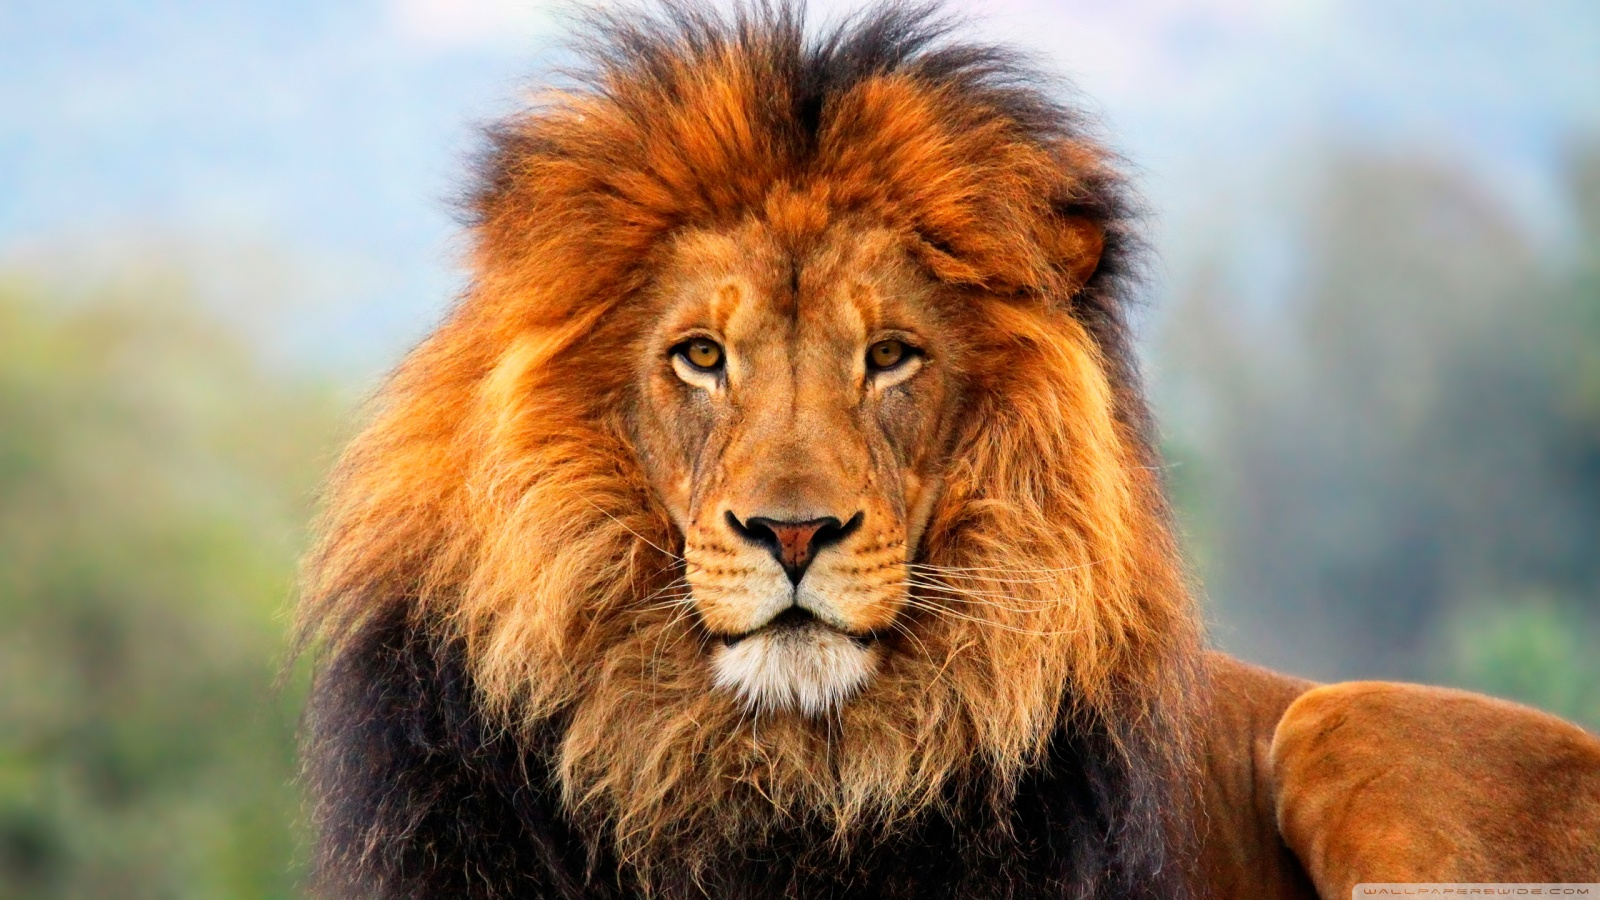 lion pictures hd wallpapers lion hd animal wallpapers